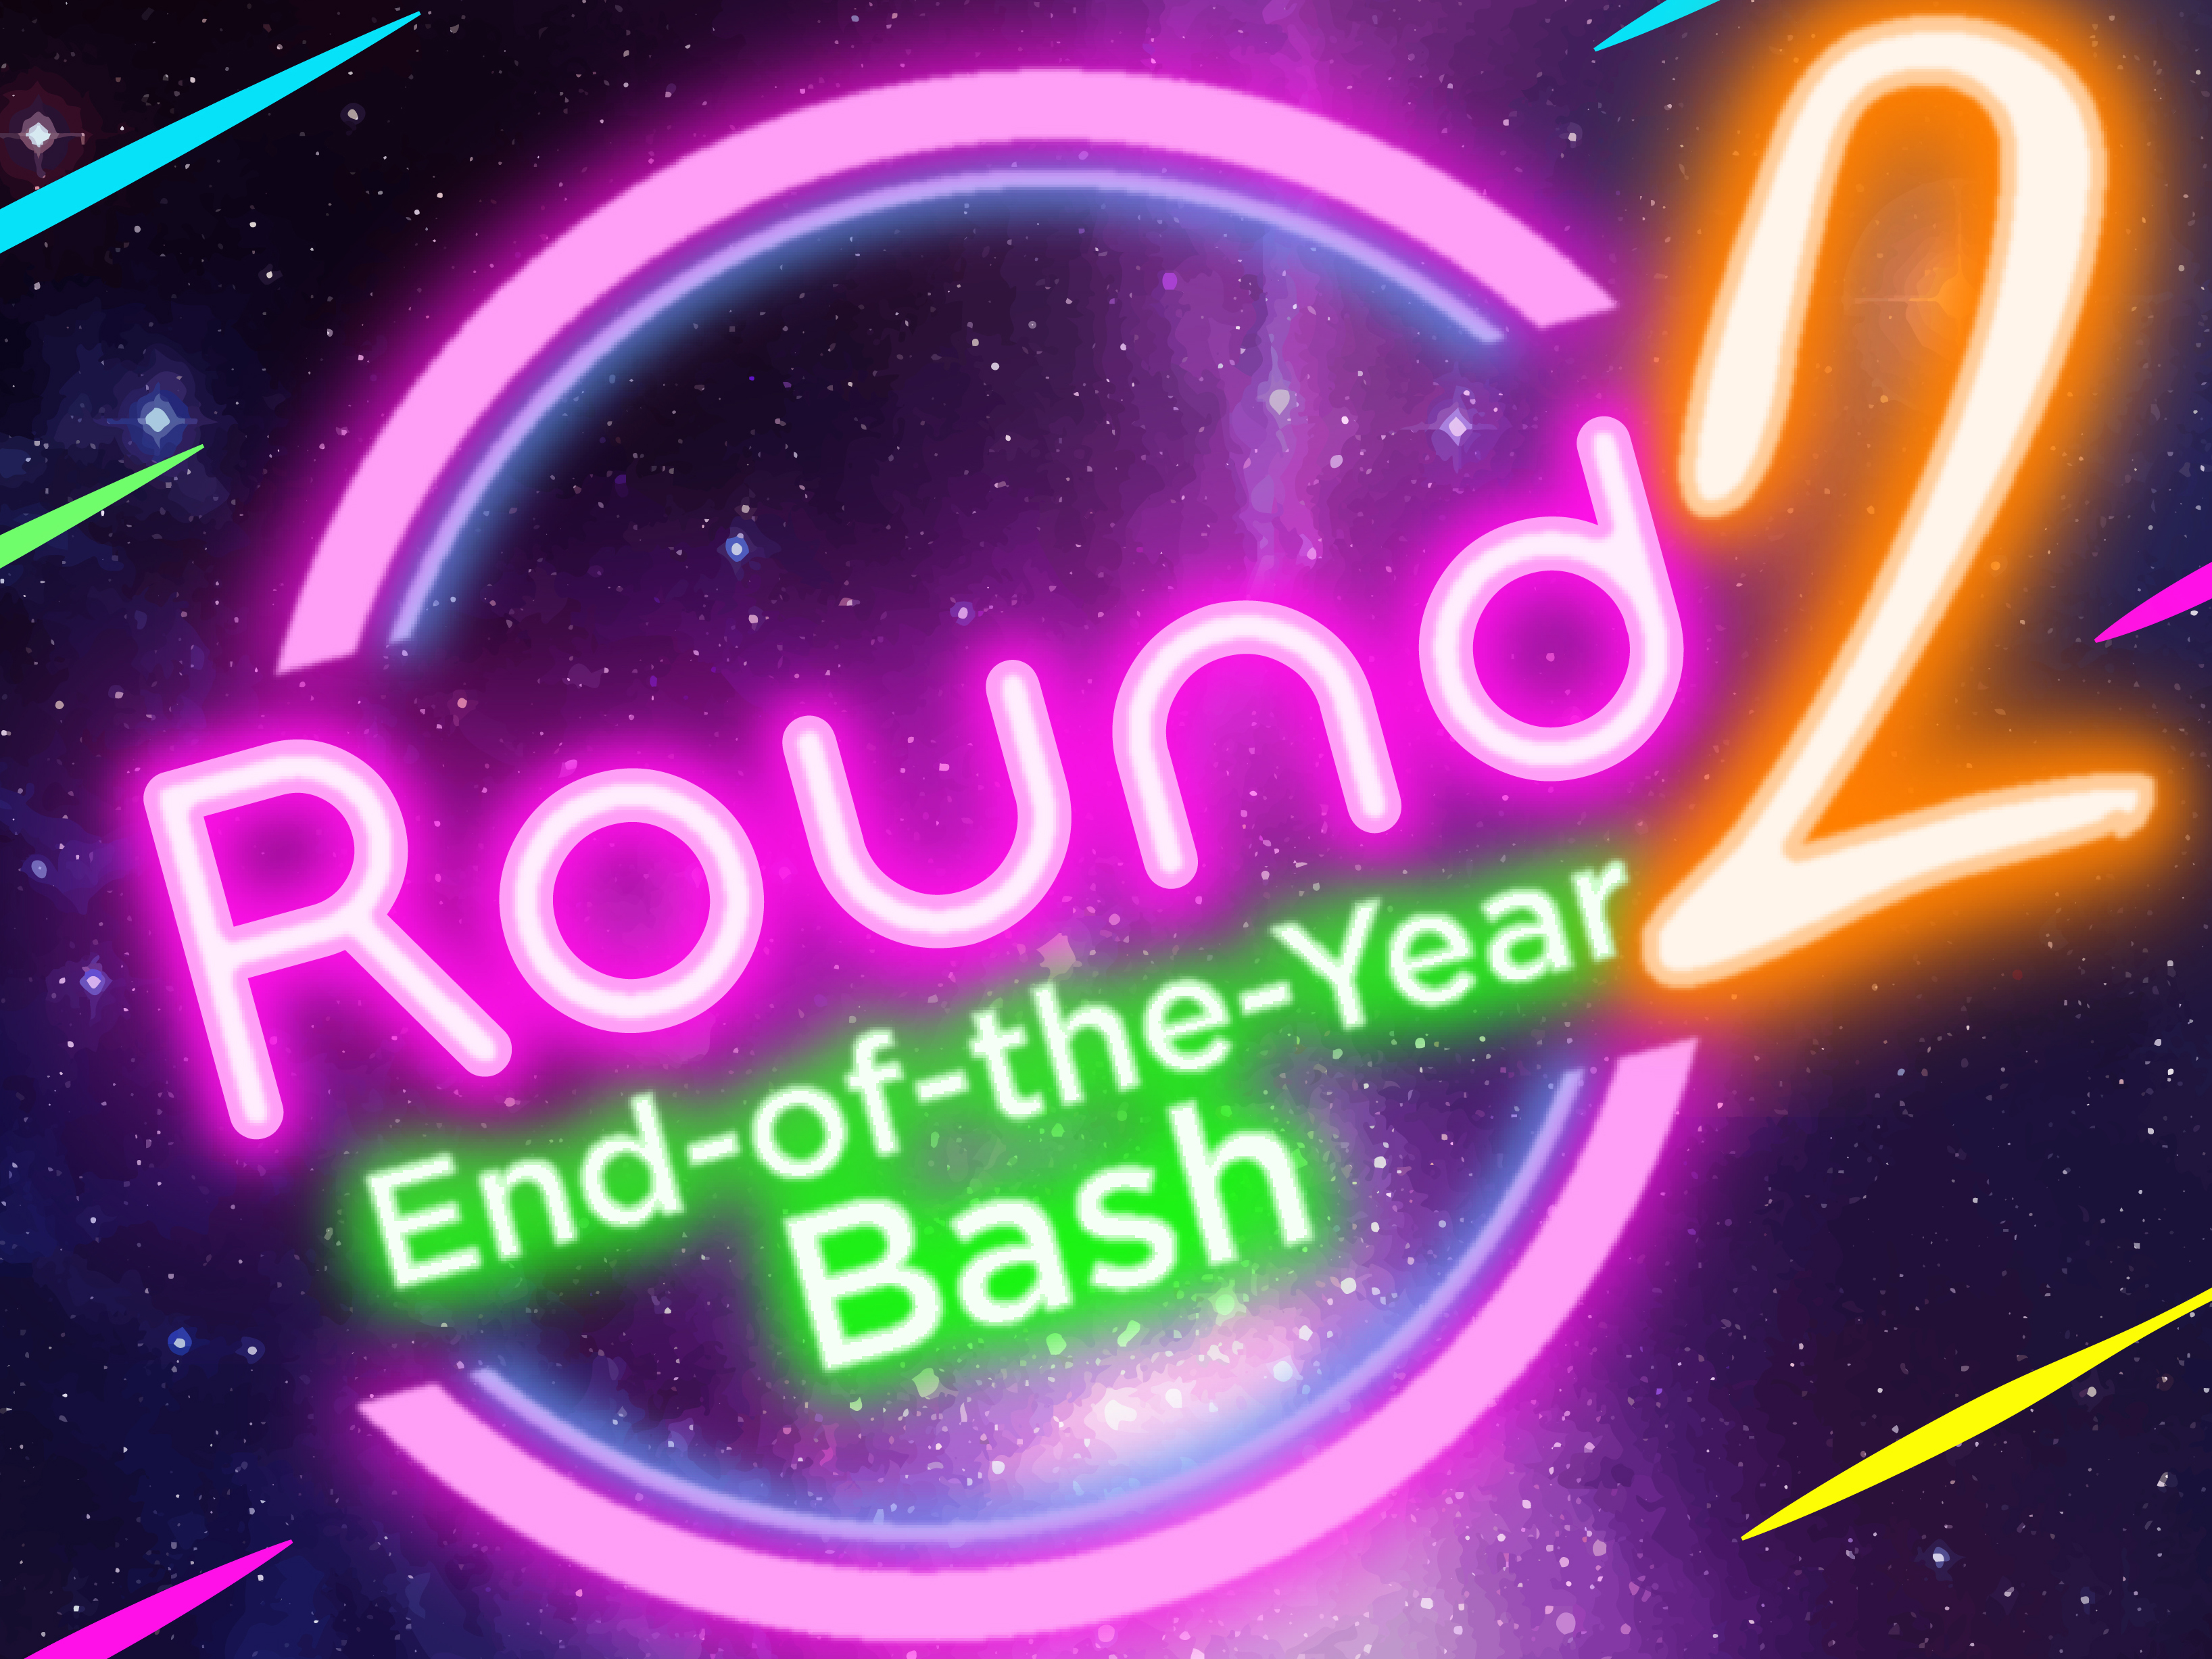 Round 2: End-of-the-Year Bash